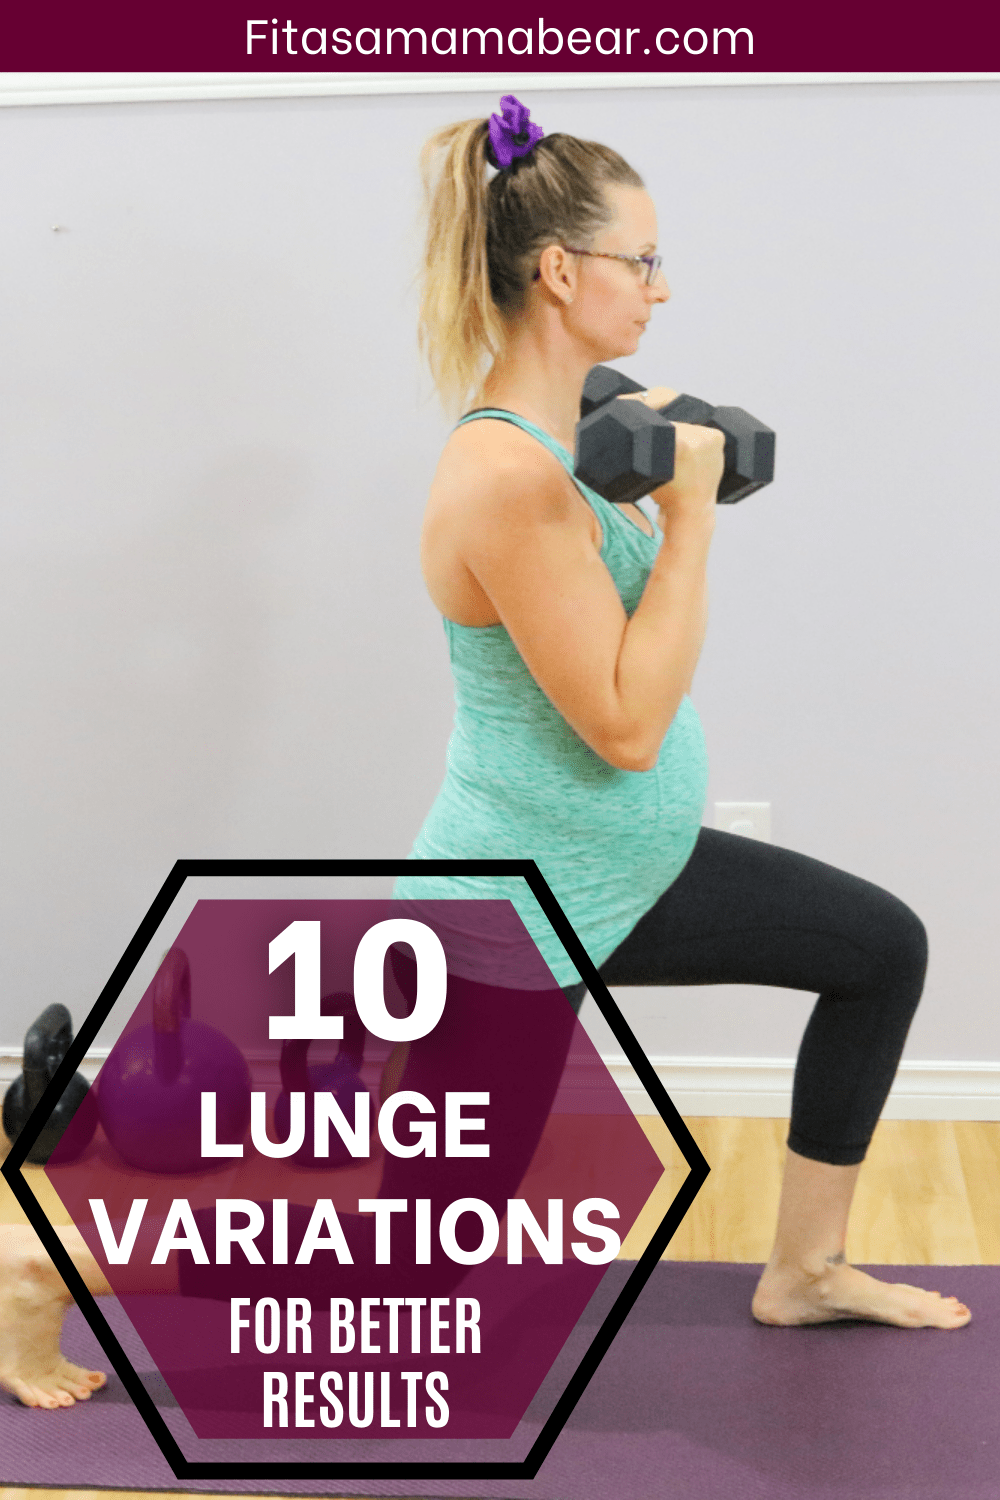 Pinterest image with text: woman in green shirt and black pants performing a lunge with dumbbells on a yoga matt